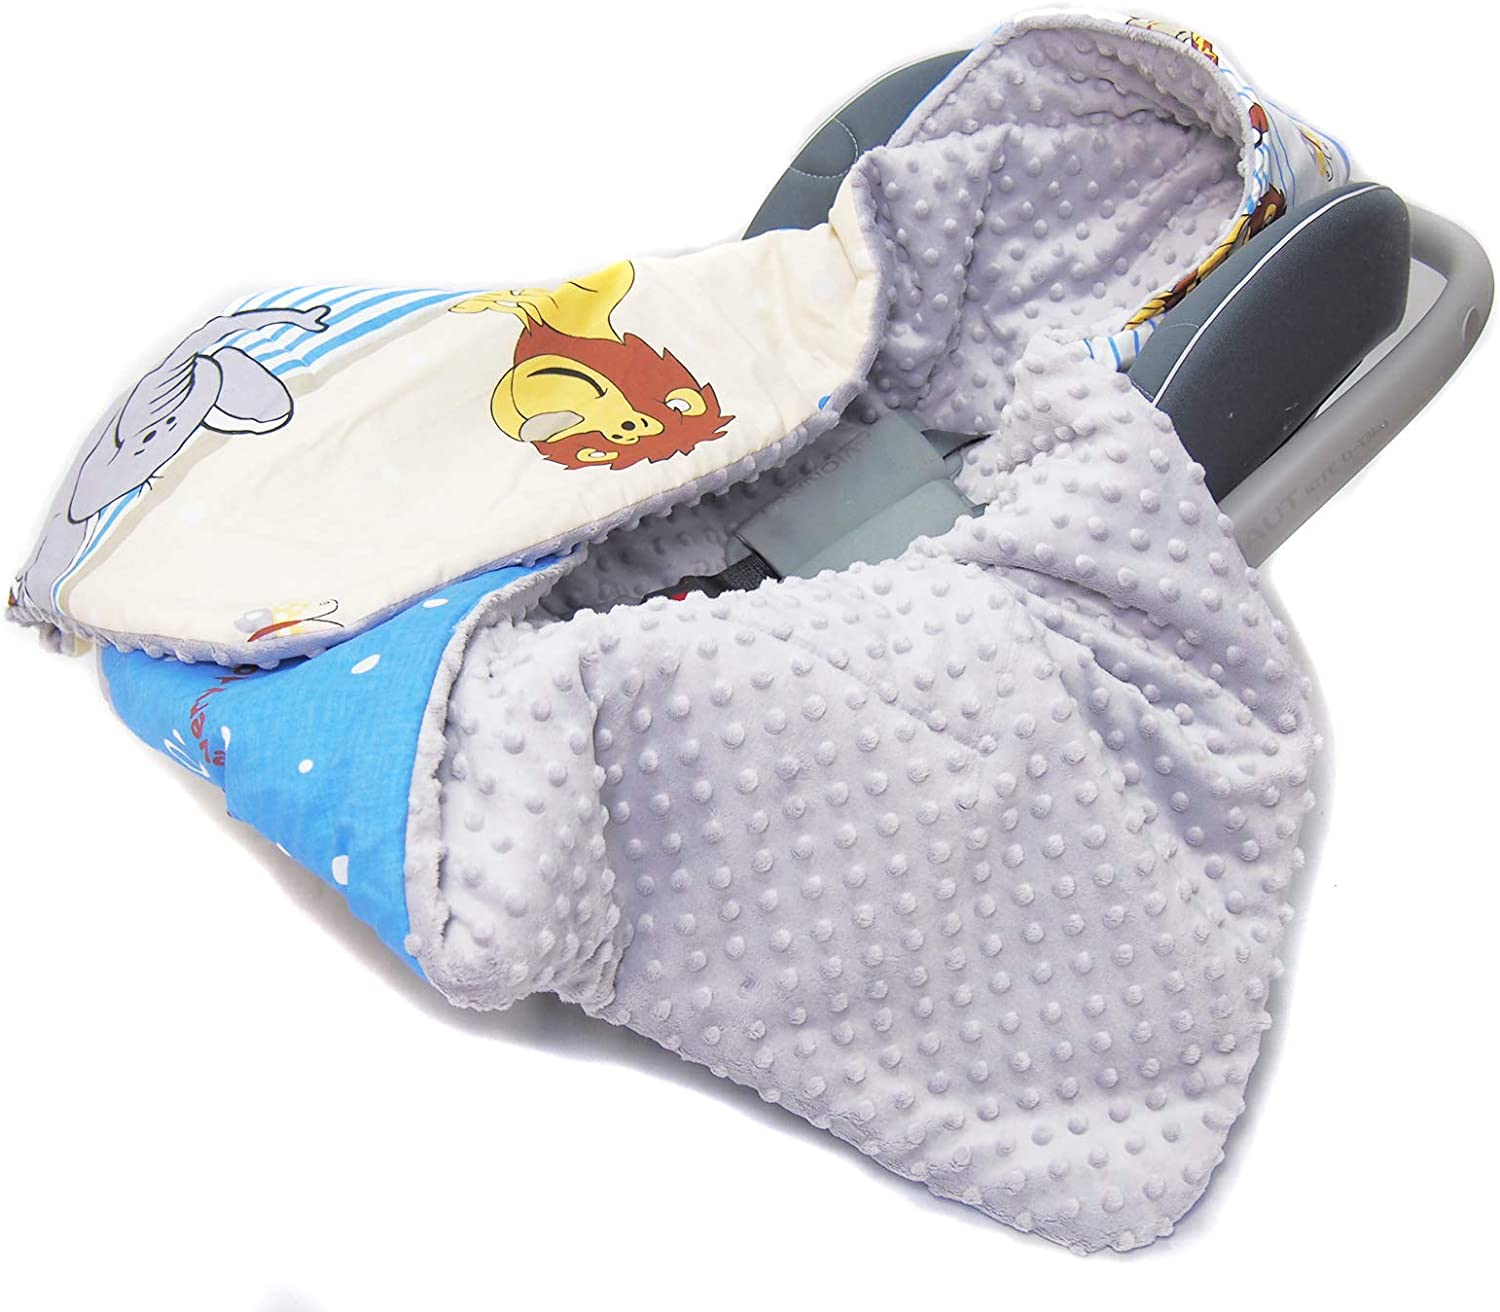 COSYTOES White Elephants on Grey with Cream Minky COVER PUSHCHAIR BLANKET Hooded CAR SEAT PADDED BABY BLANKET Reversible Cotton//Minky